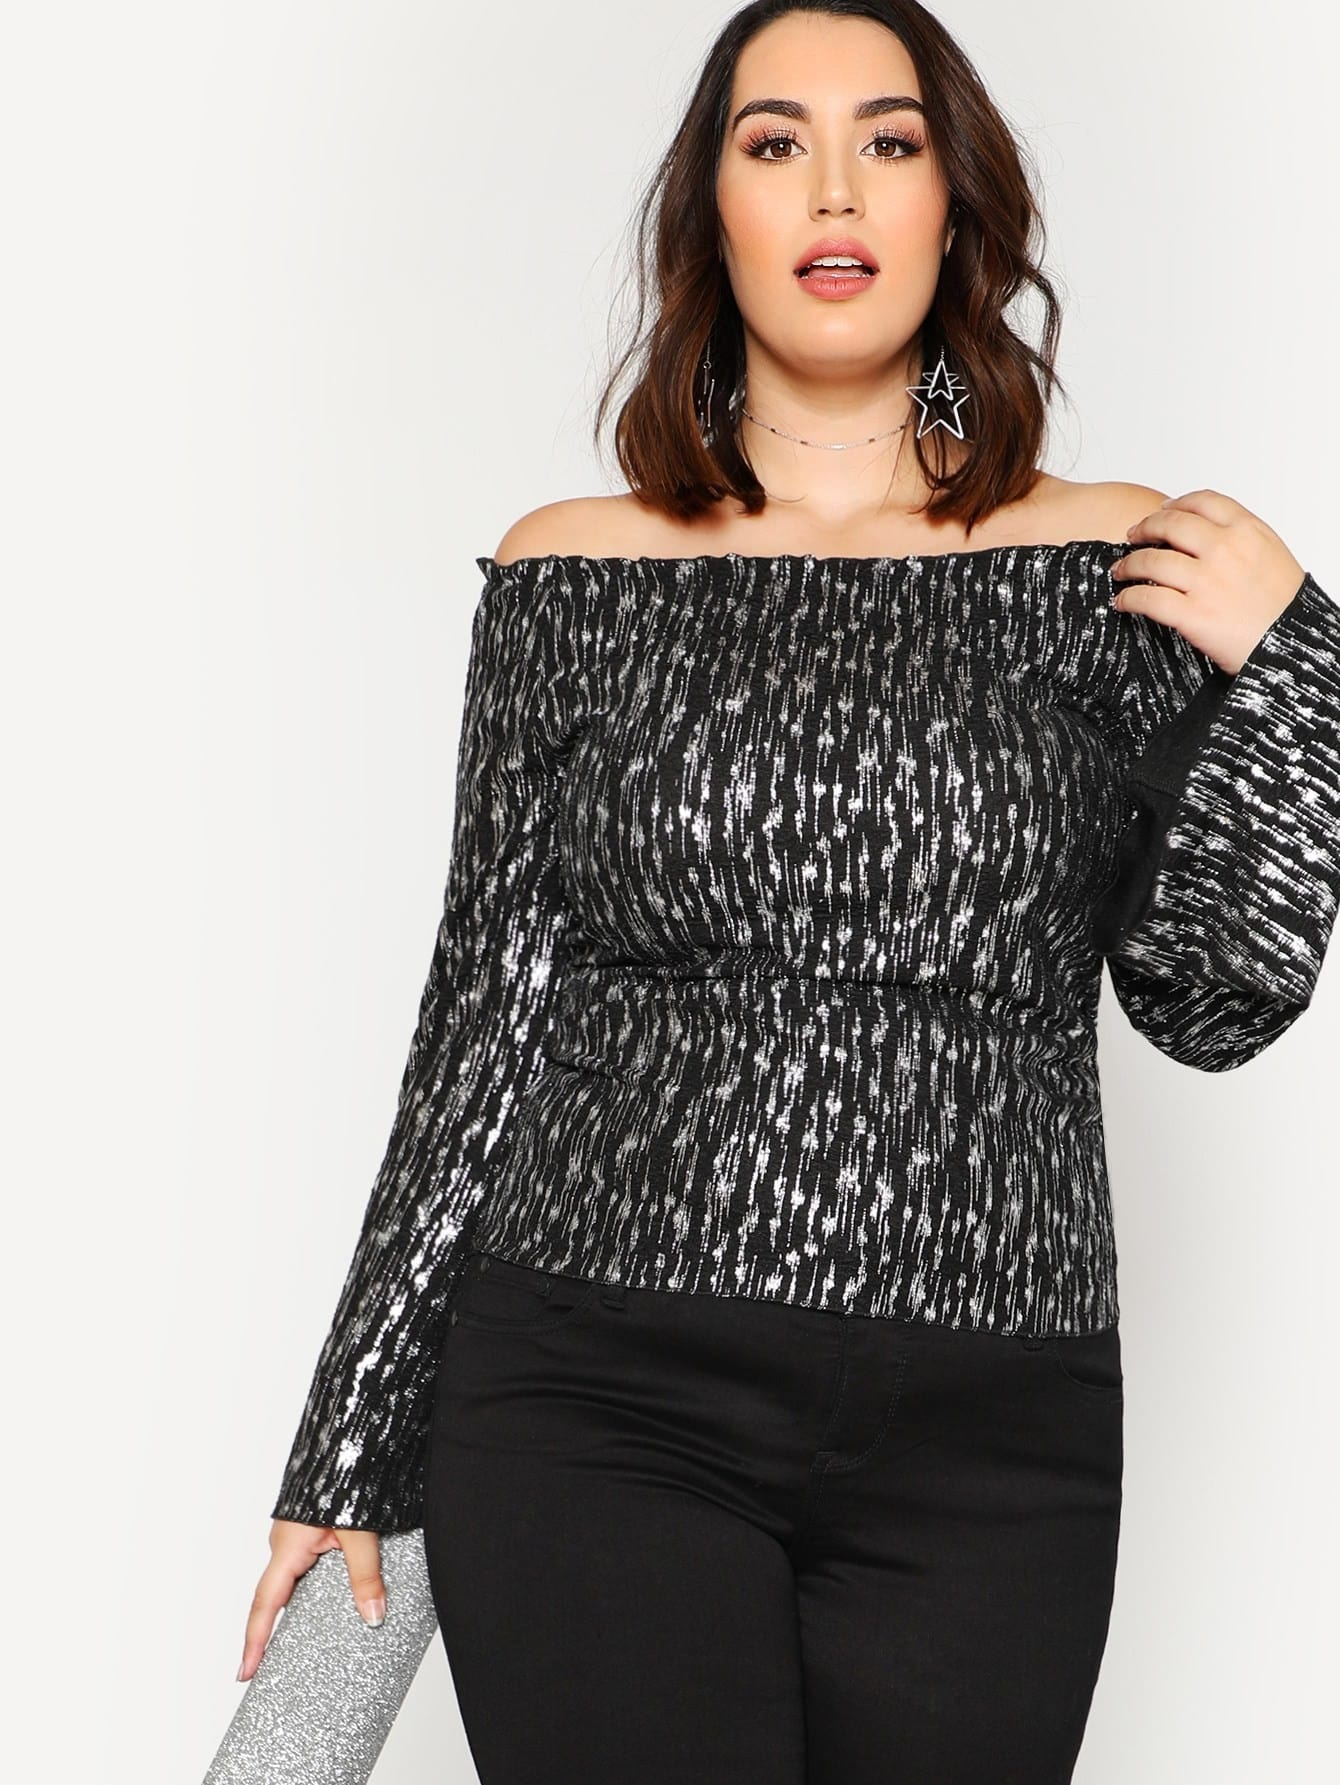 Frilled Neck Bell Sleeve Sparkle Top blouse171212721